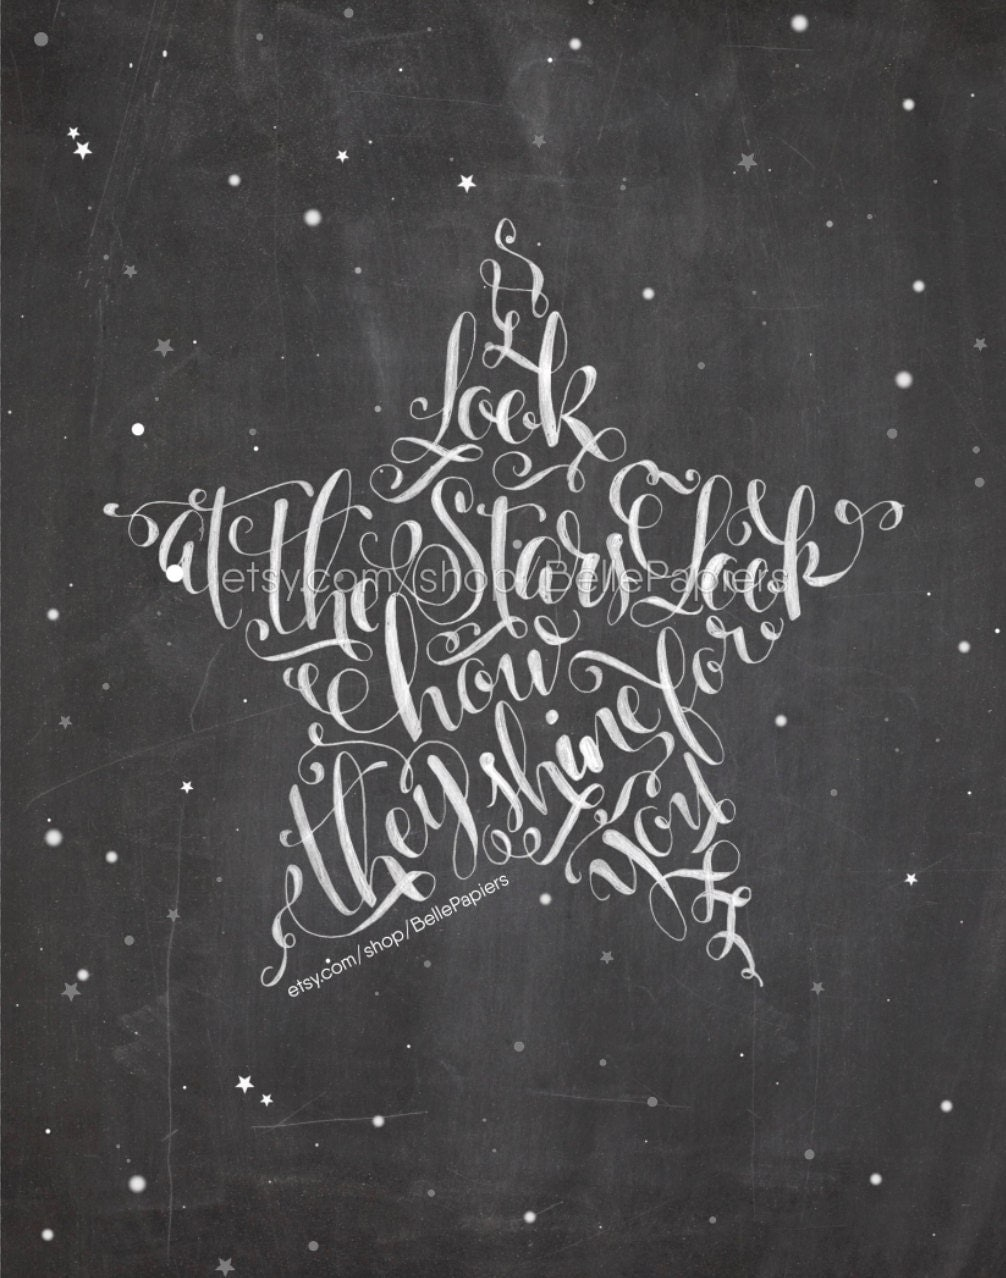 Cosmetics black leather gloves lyrics - Look At The Stars Look How They Shine For You Coldplay Lyrics Chalkboard Sign Art Nursery Wall Art Calligraphy Coldplay Yellow Parachutes